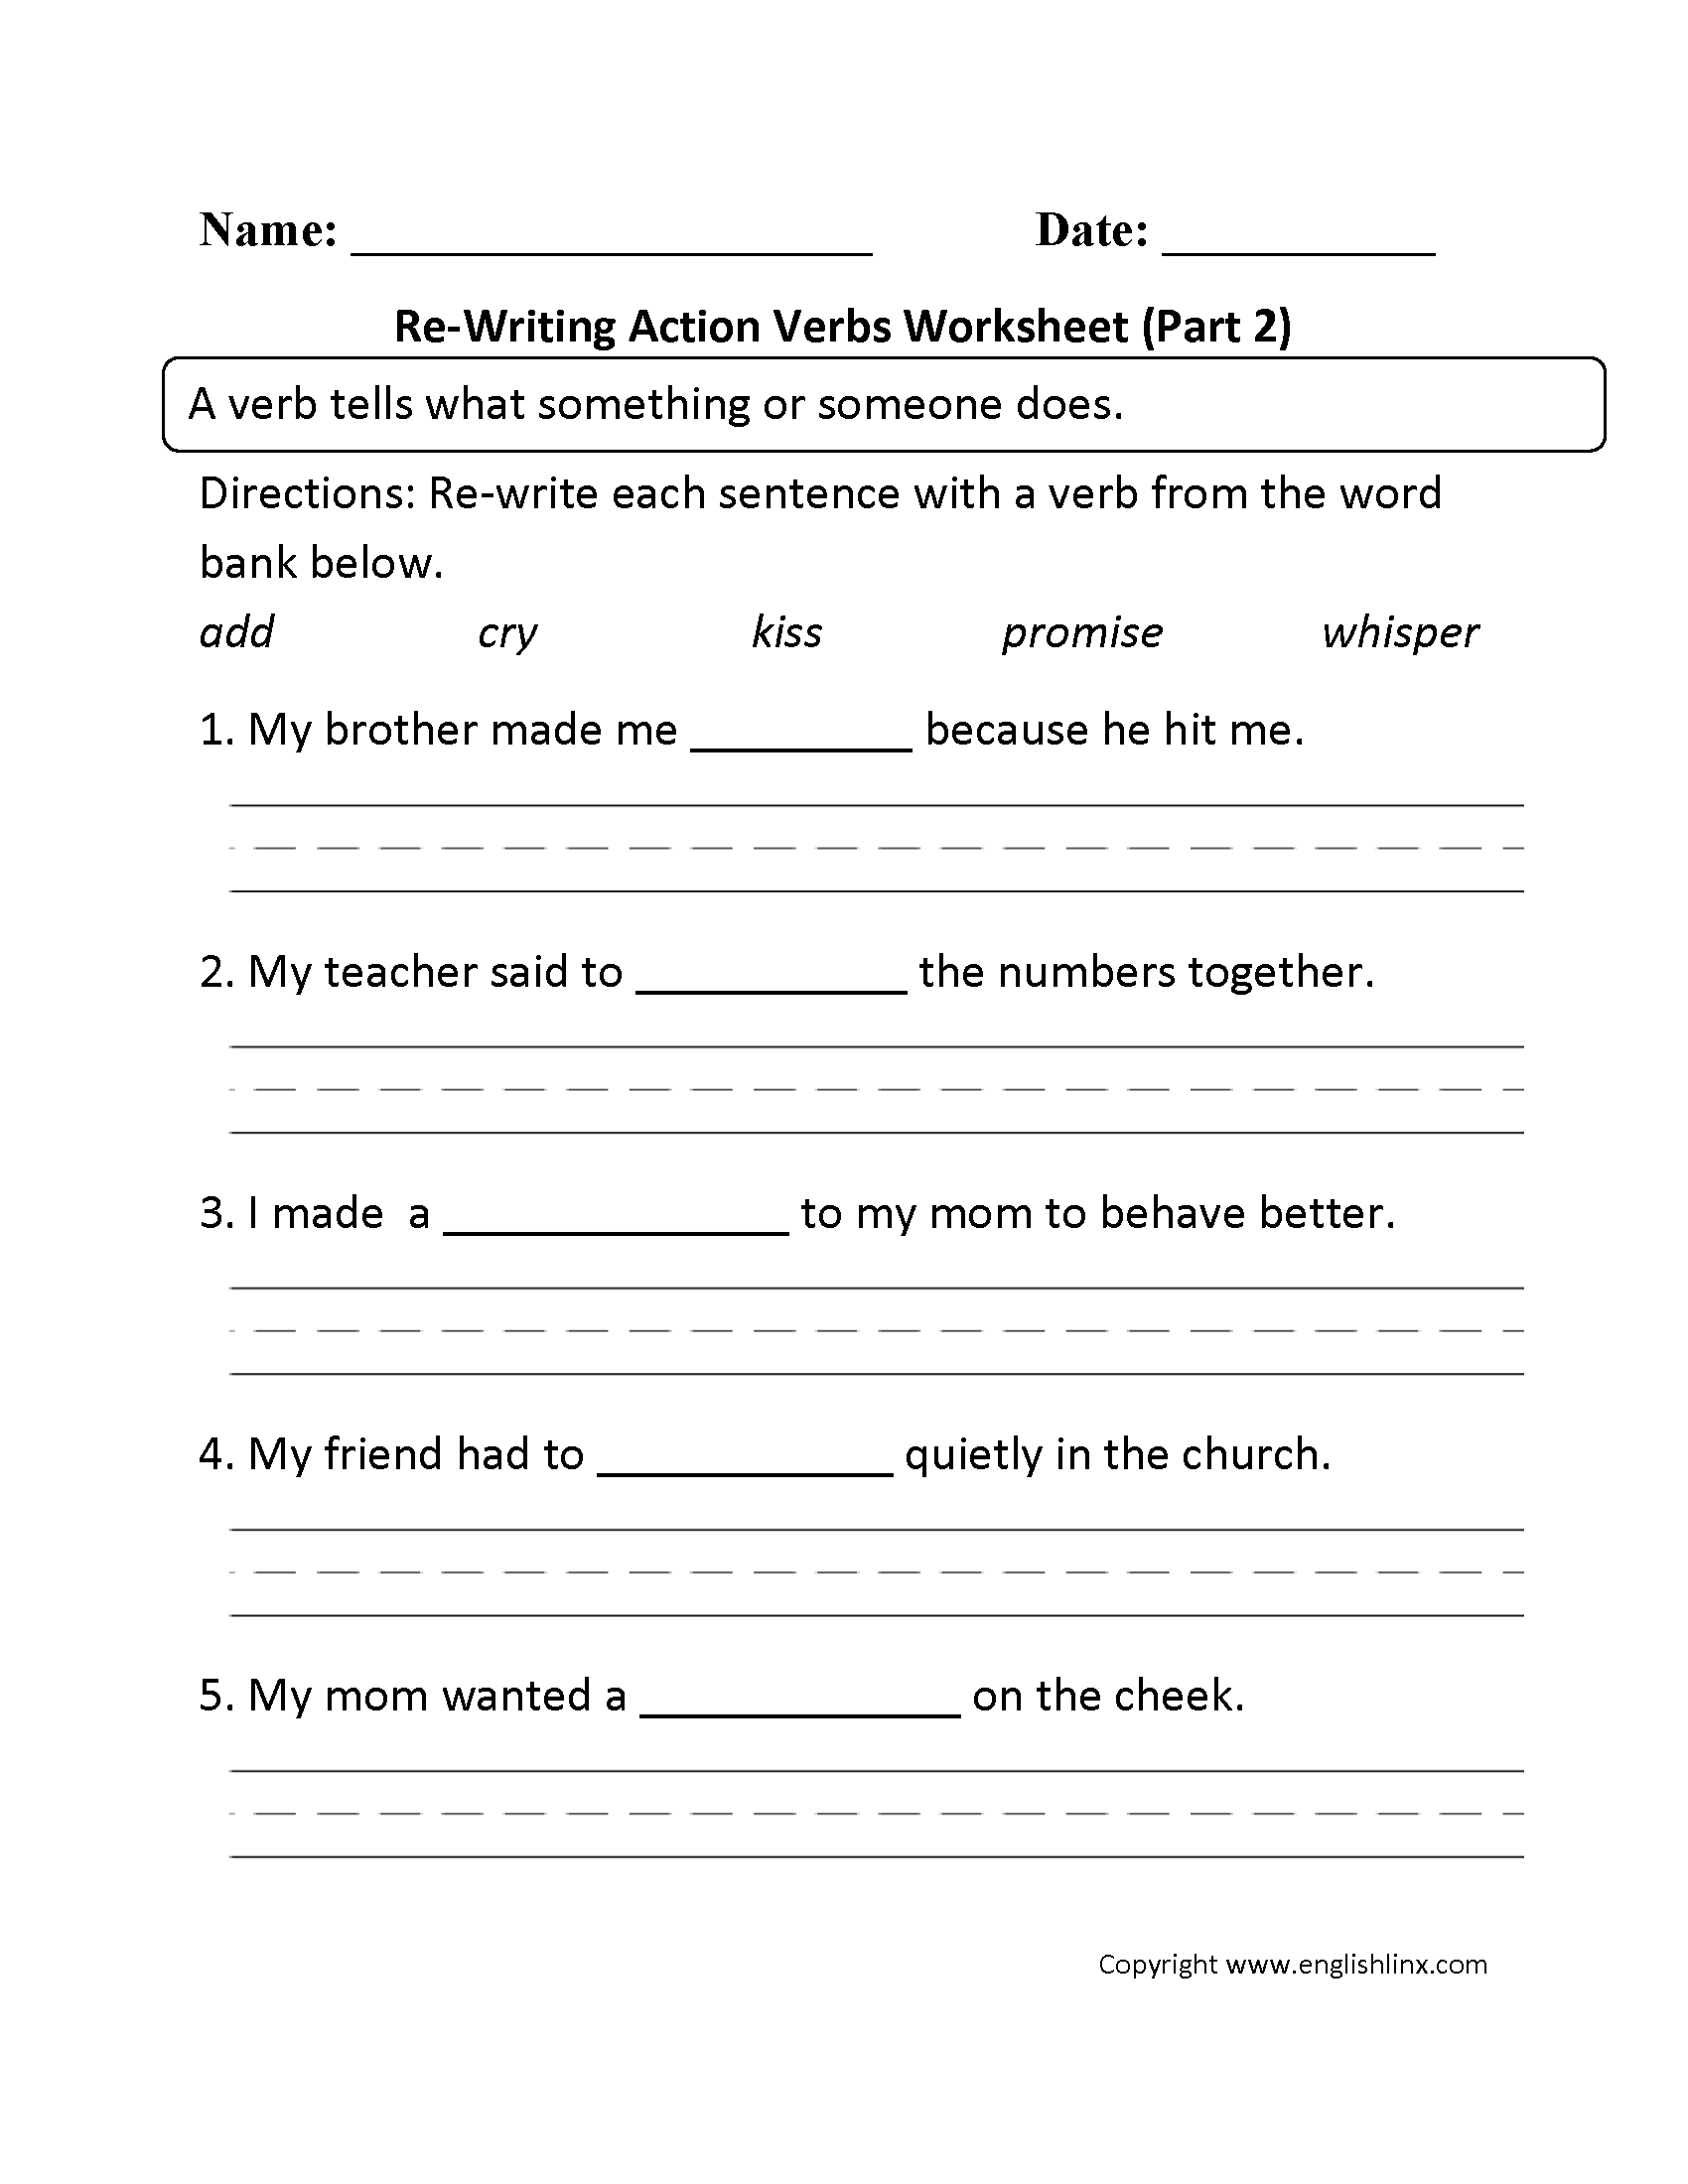 Worksheets 9th Grade Biology Worksheets verbs worksheets action worksheet part 2